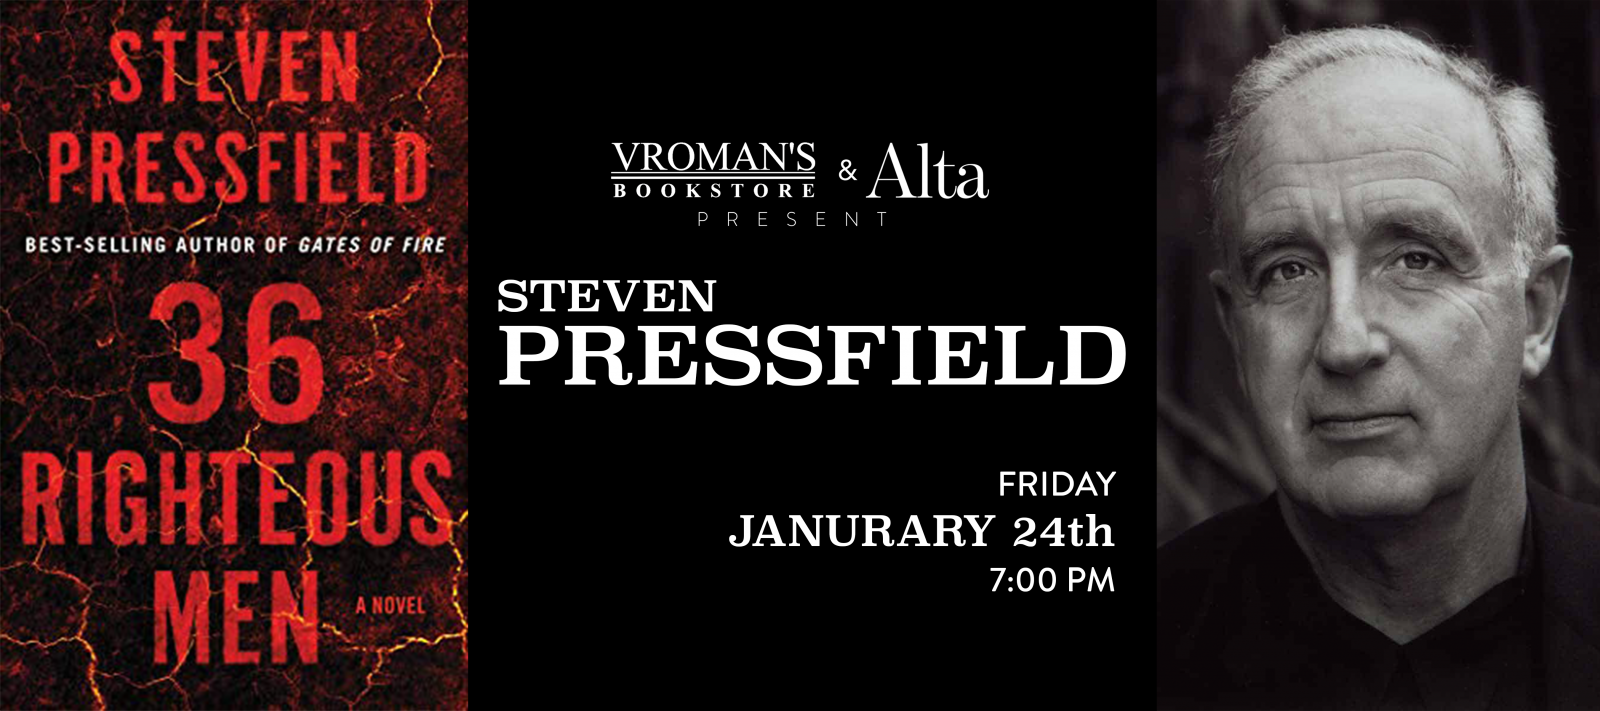 Steven Pressfield book signing Friday January 24th at 7pm